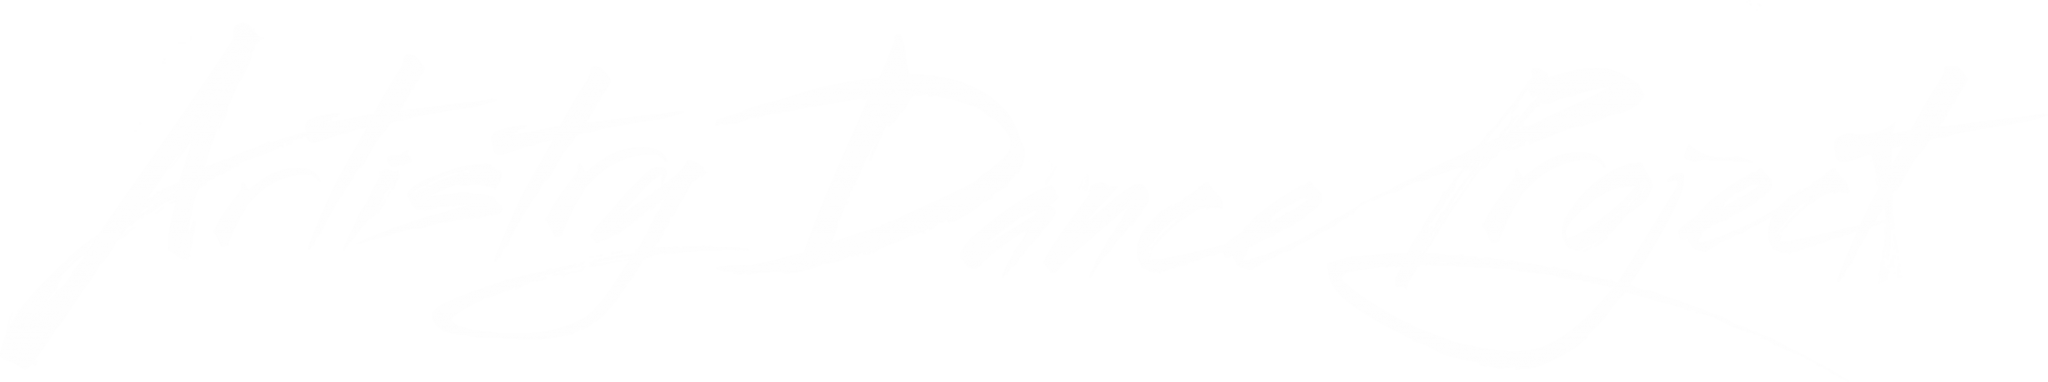 Artistry Dance Project Logo